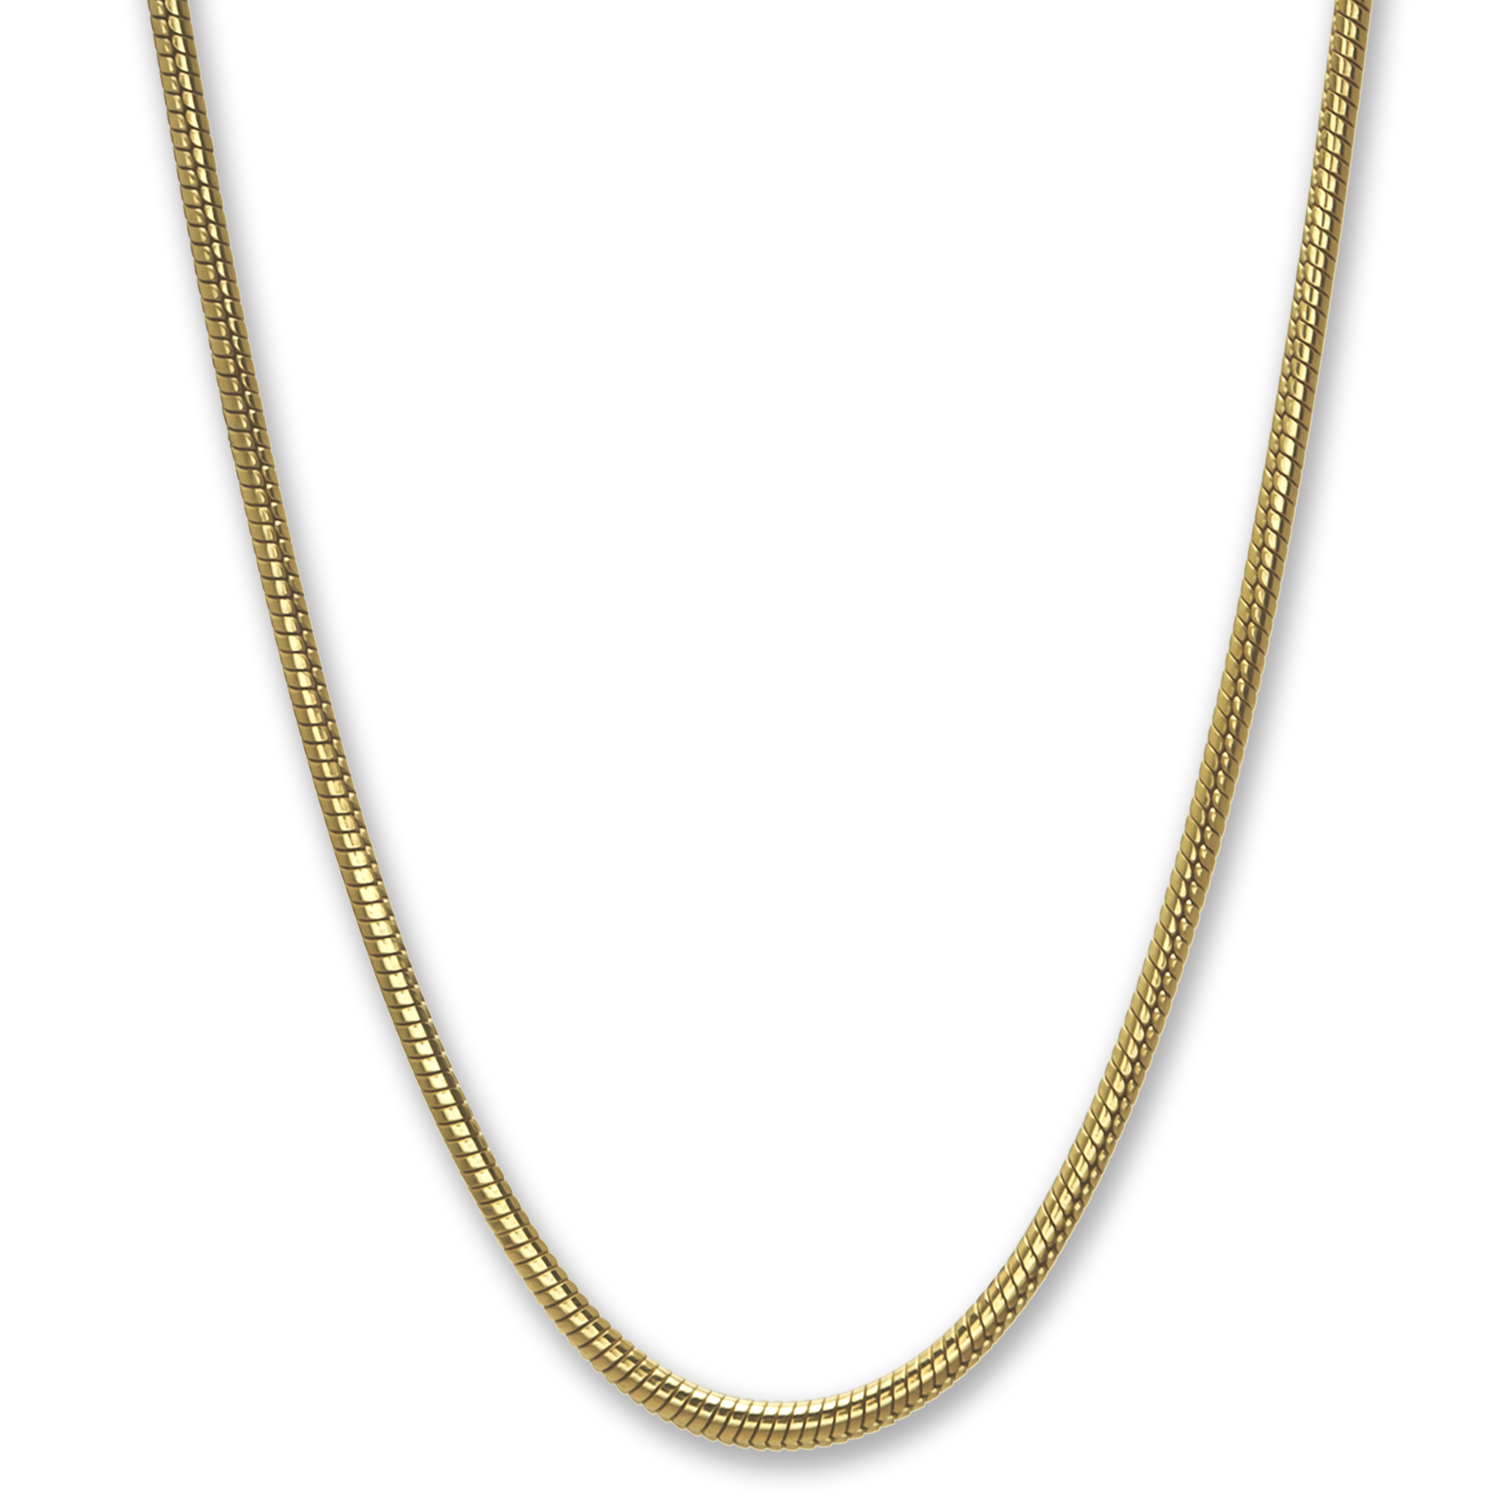 Classic Round Snake 14k Gold Necklace - 24 in.